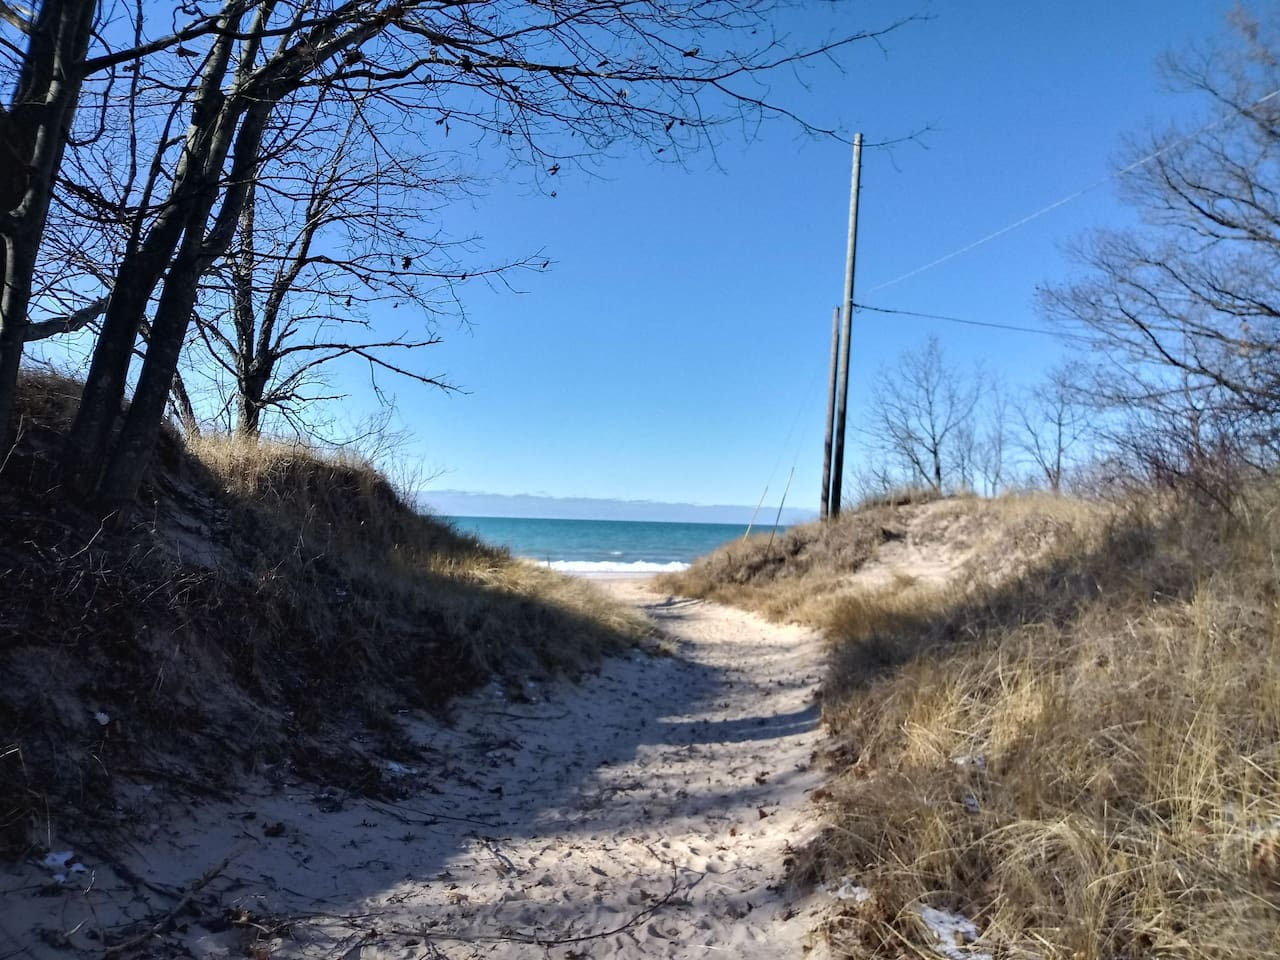 Welcome to Silver Lake and Lake Michigan beauty